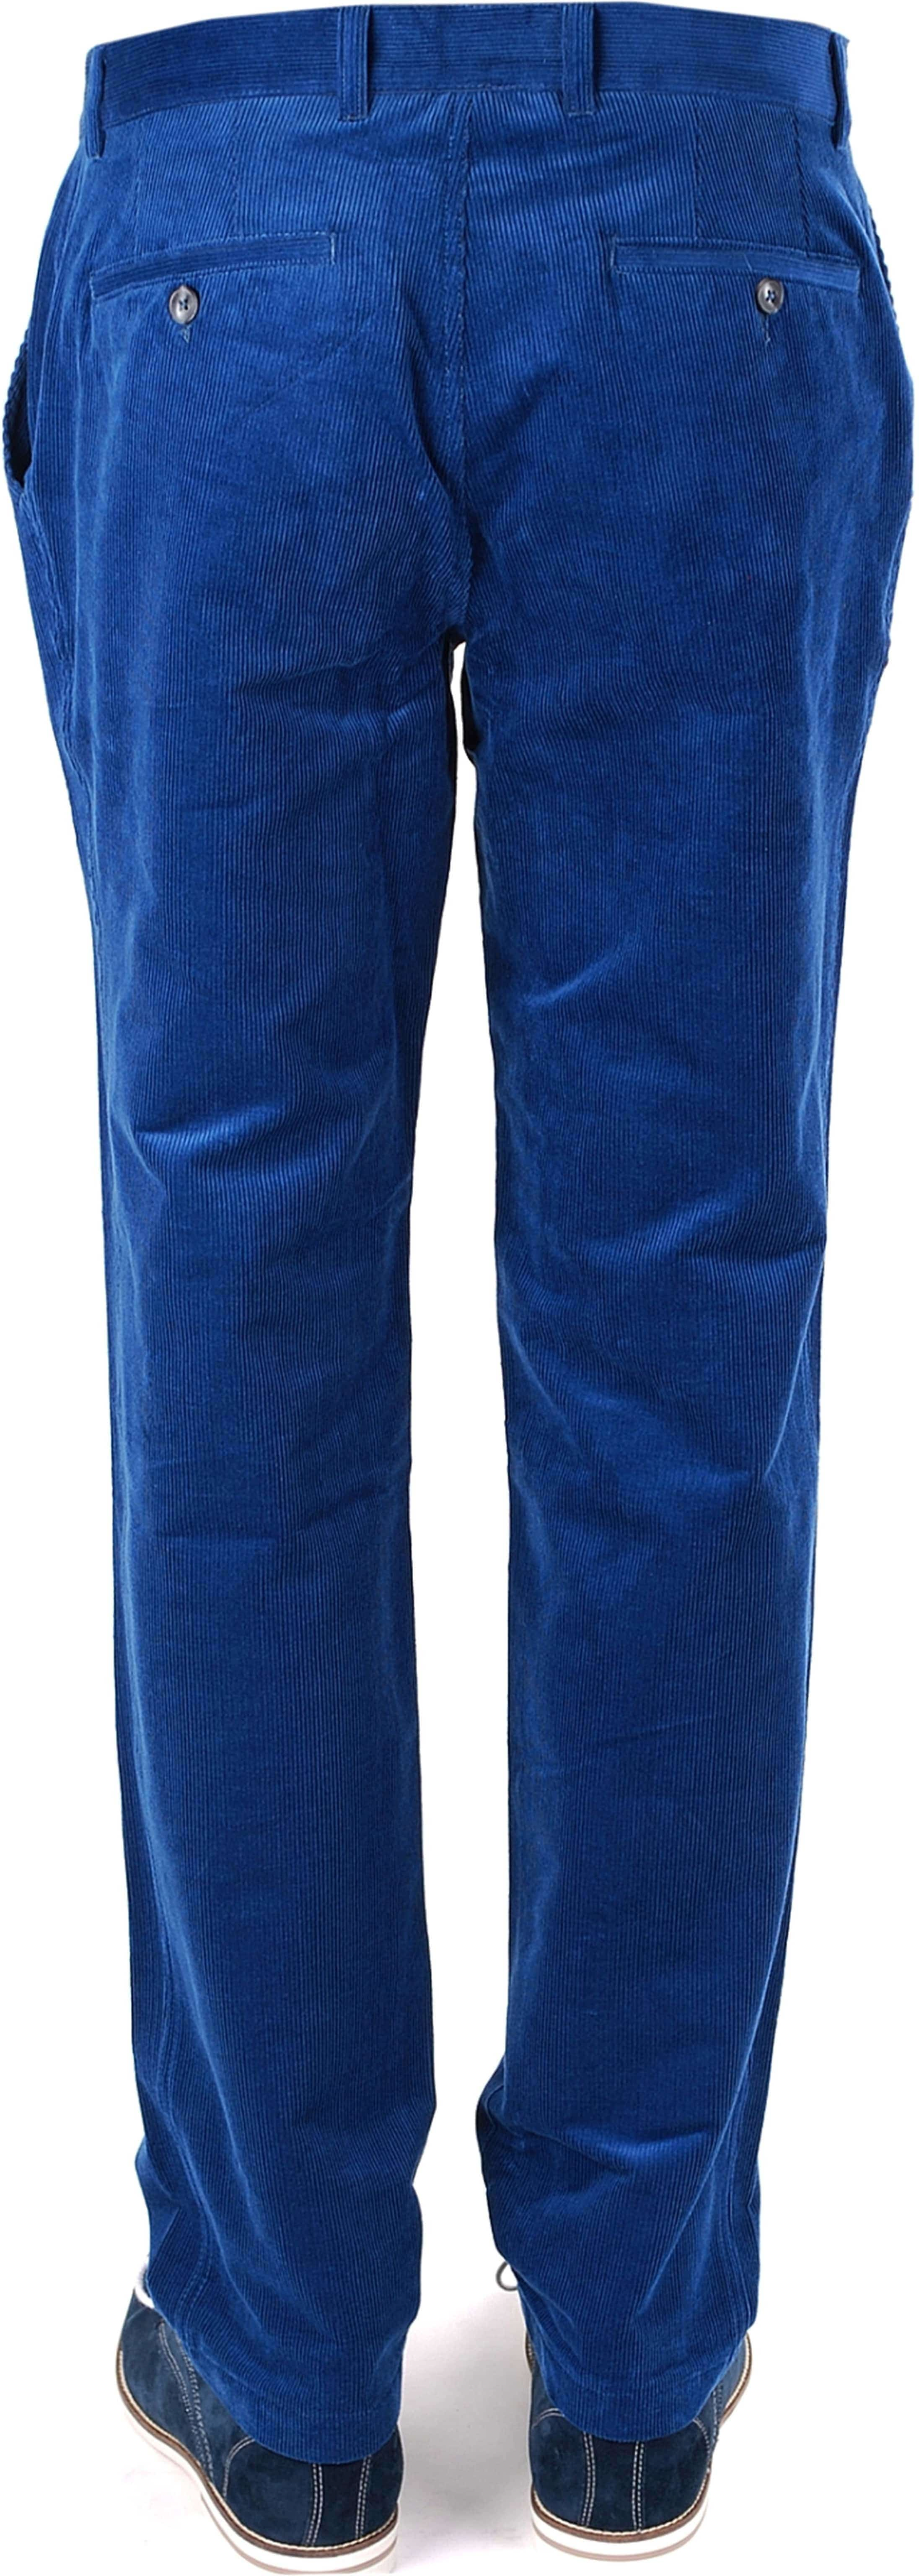 Suitable Chino Cord Royal Blau